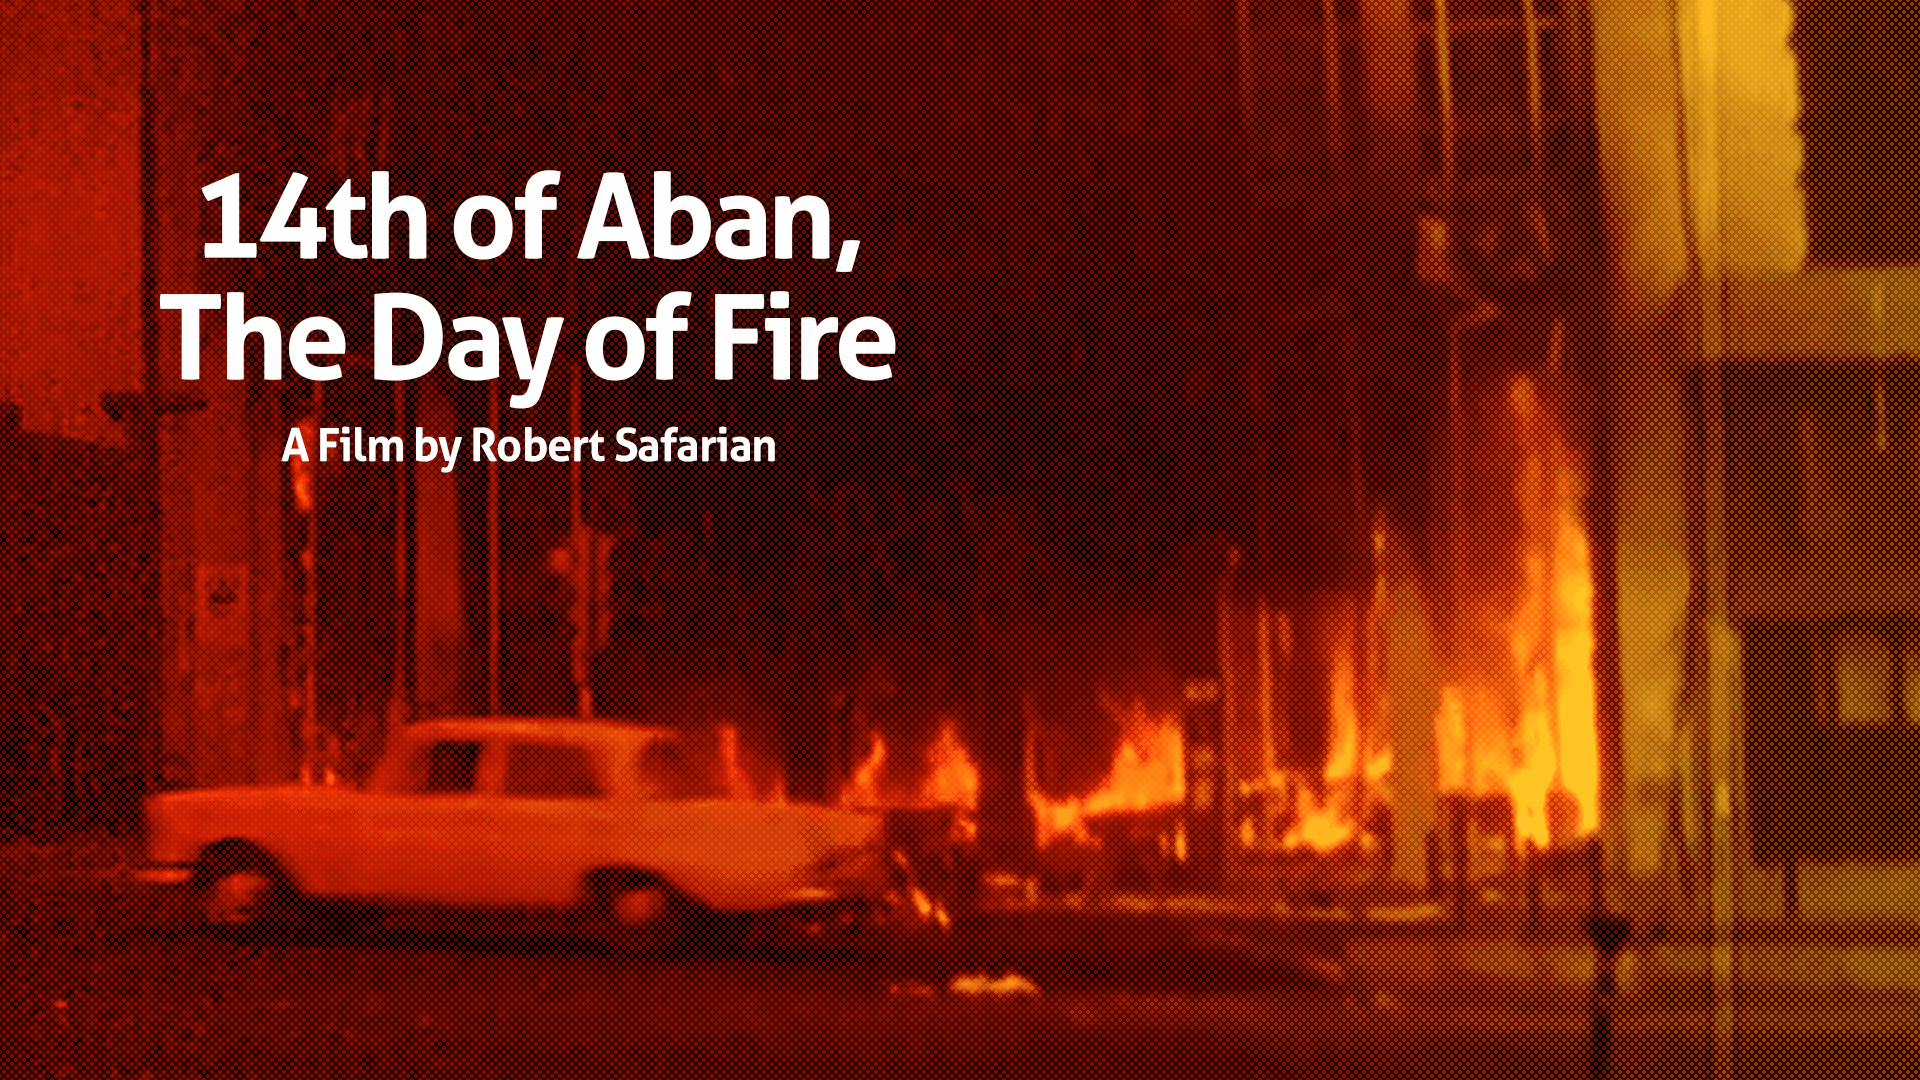 14th of Aban, The Day of Fire (2009)